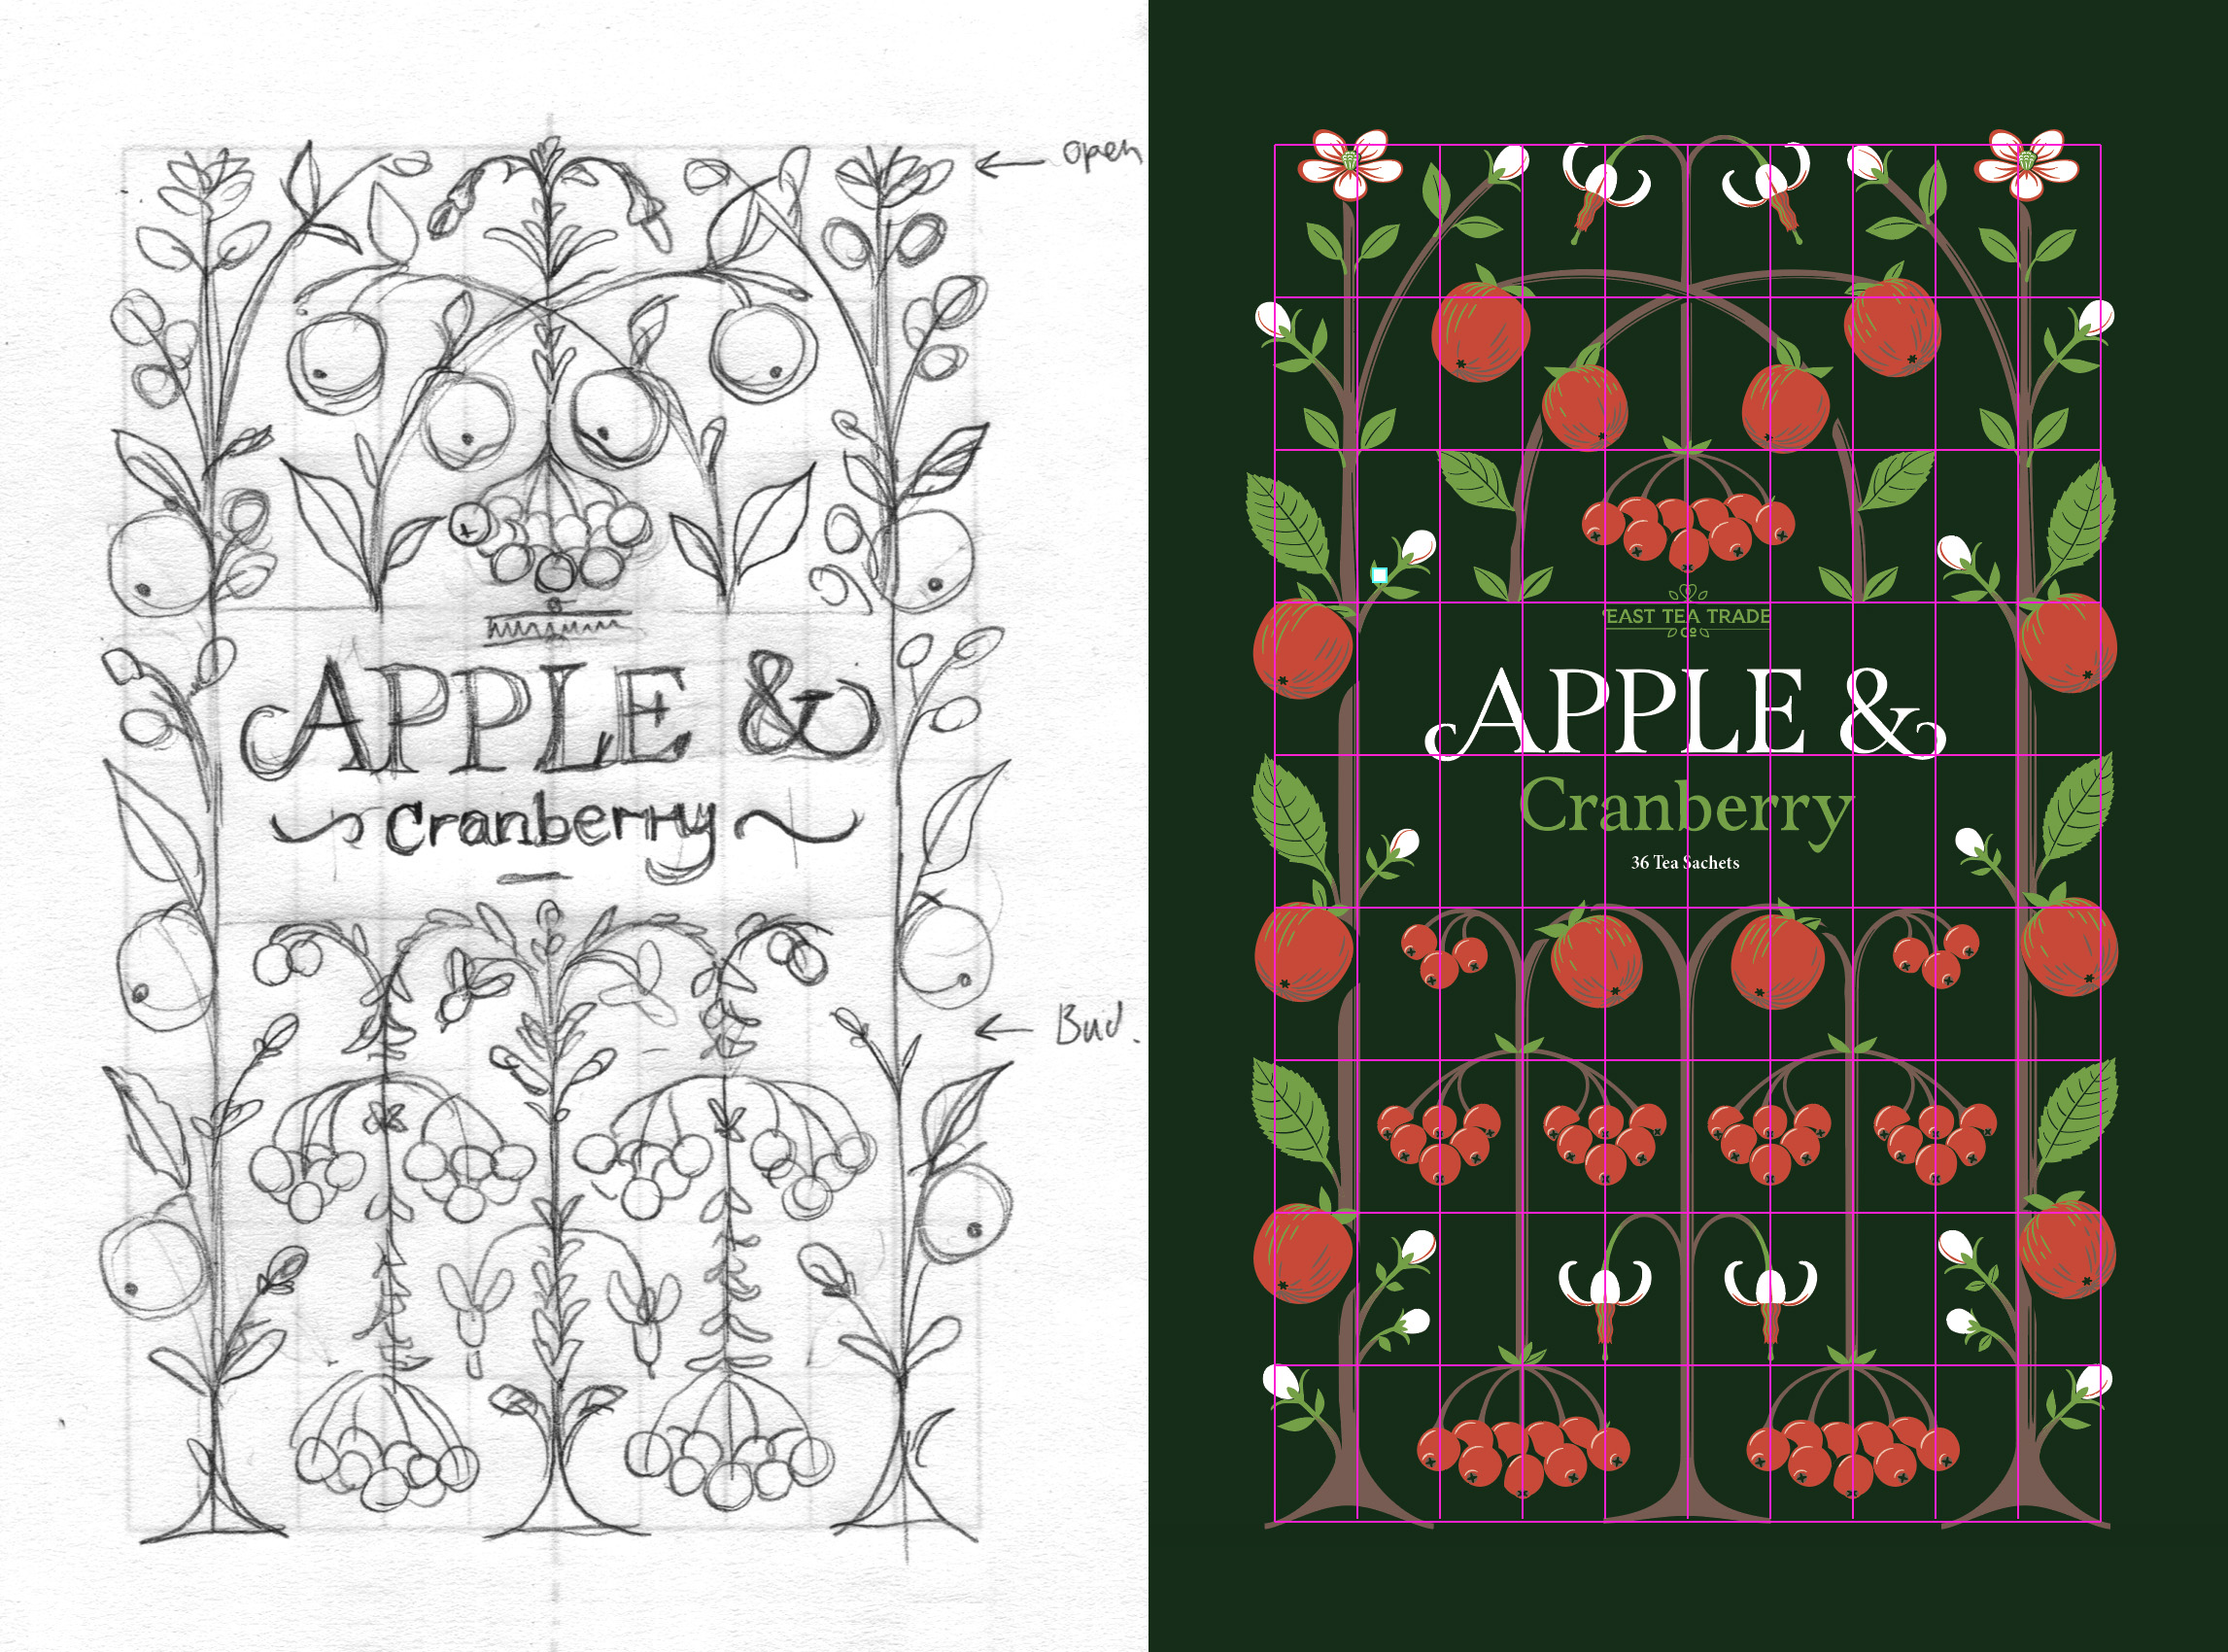 Original sketch Apple & Cranberry sketch and the underlaying grid